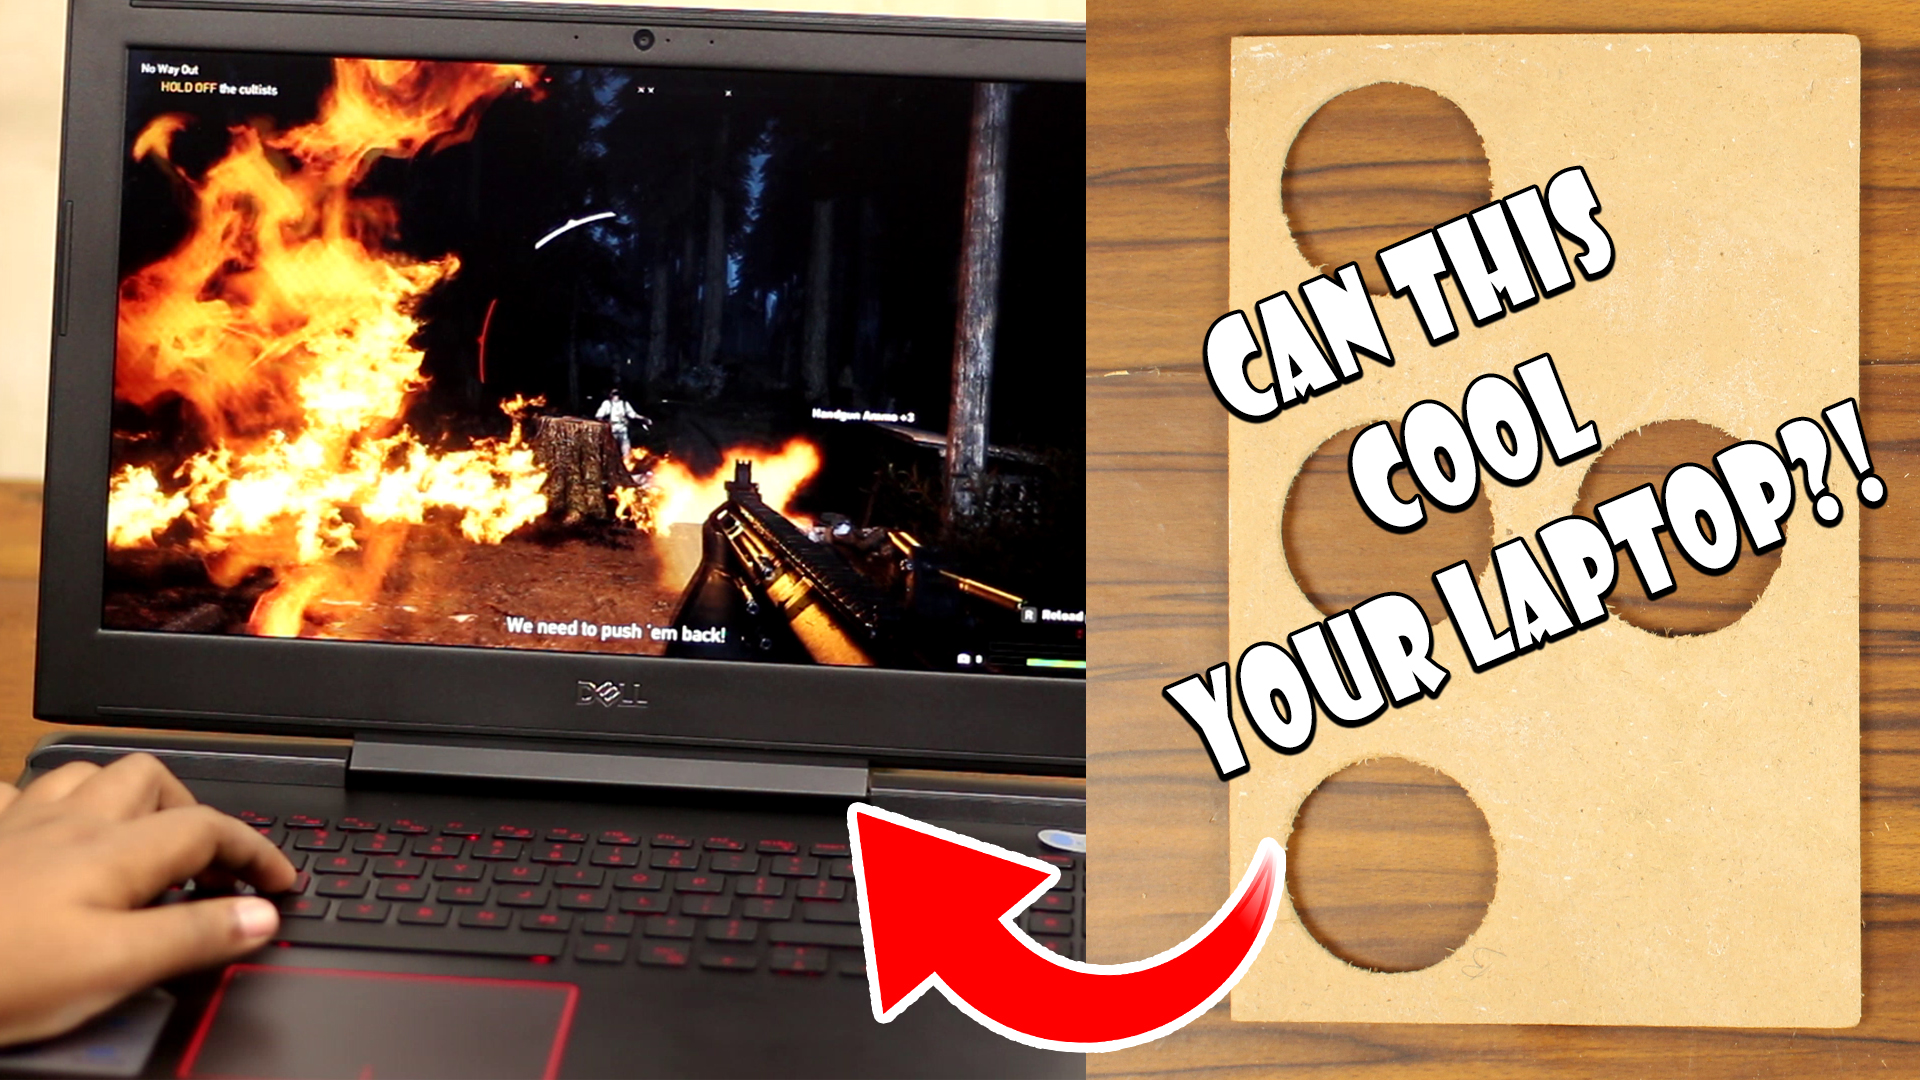 How to Cool Laptop Properly? Let's Create a Simple Back Cover!